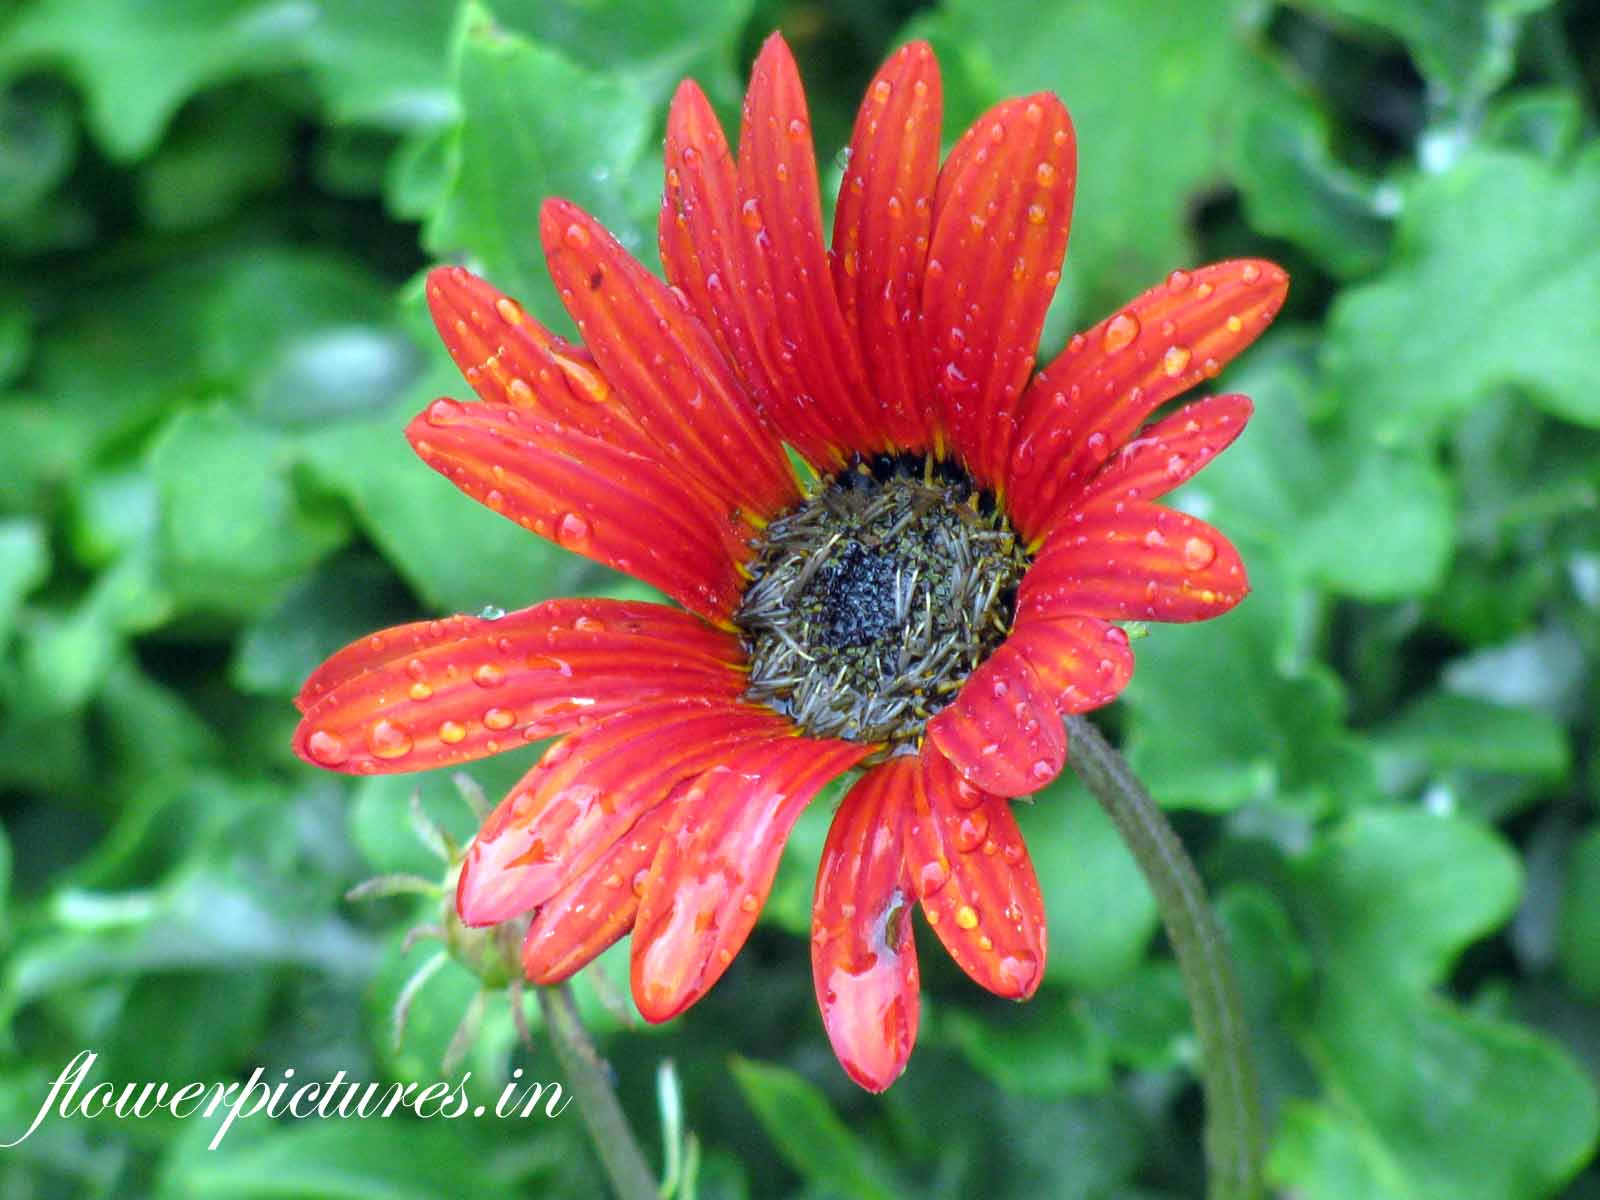 red daisy flower before blooming  flowers pictures  indian flowers, Natural flower